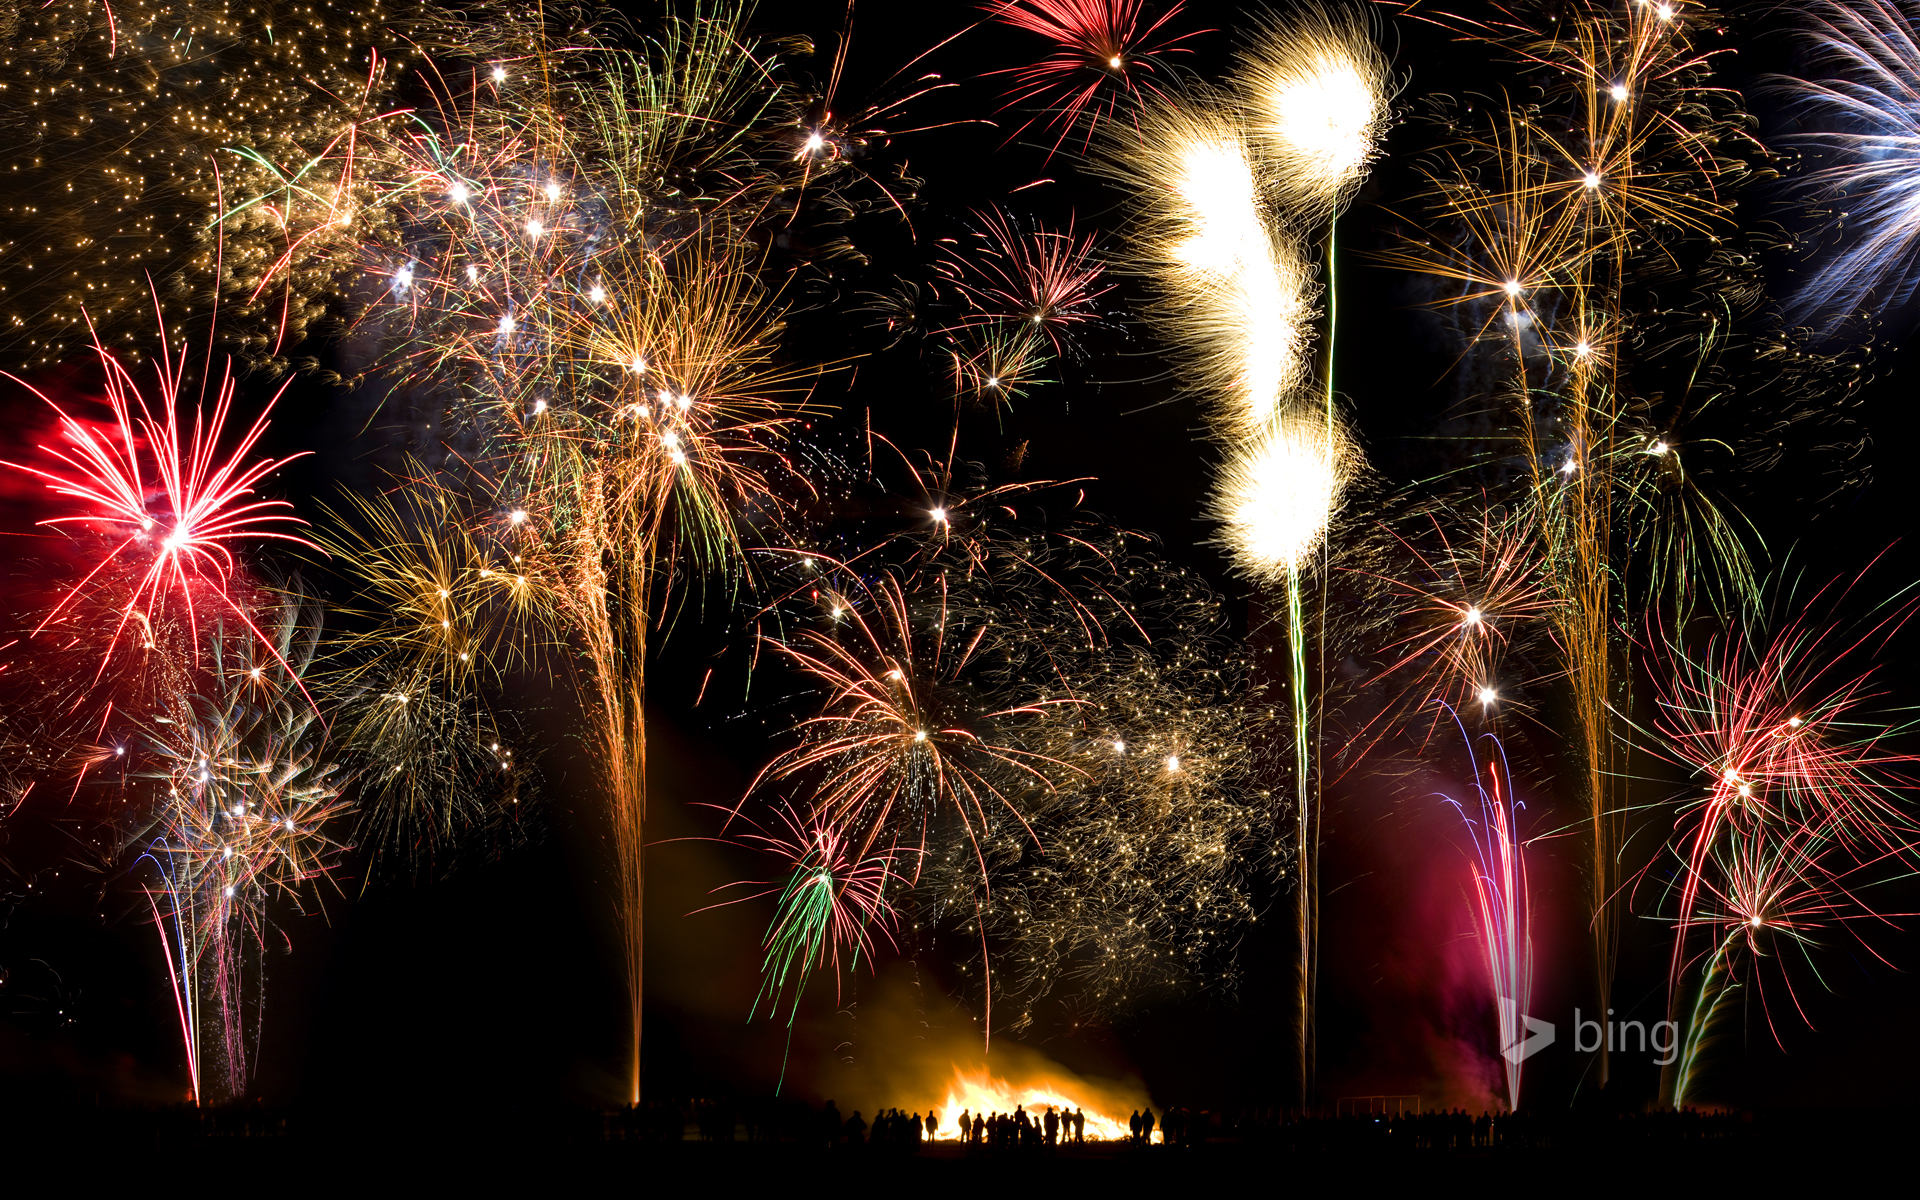 Bonfire and firework display to celebrate the 5th of November anniversary of the 'Gunpowder Plot'